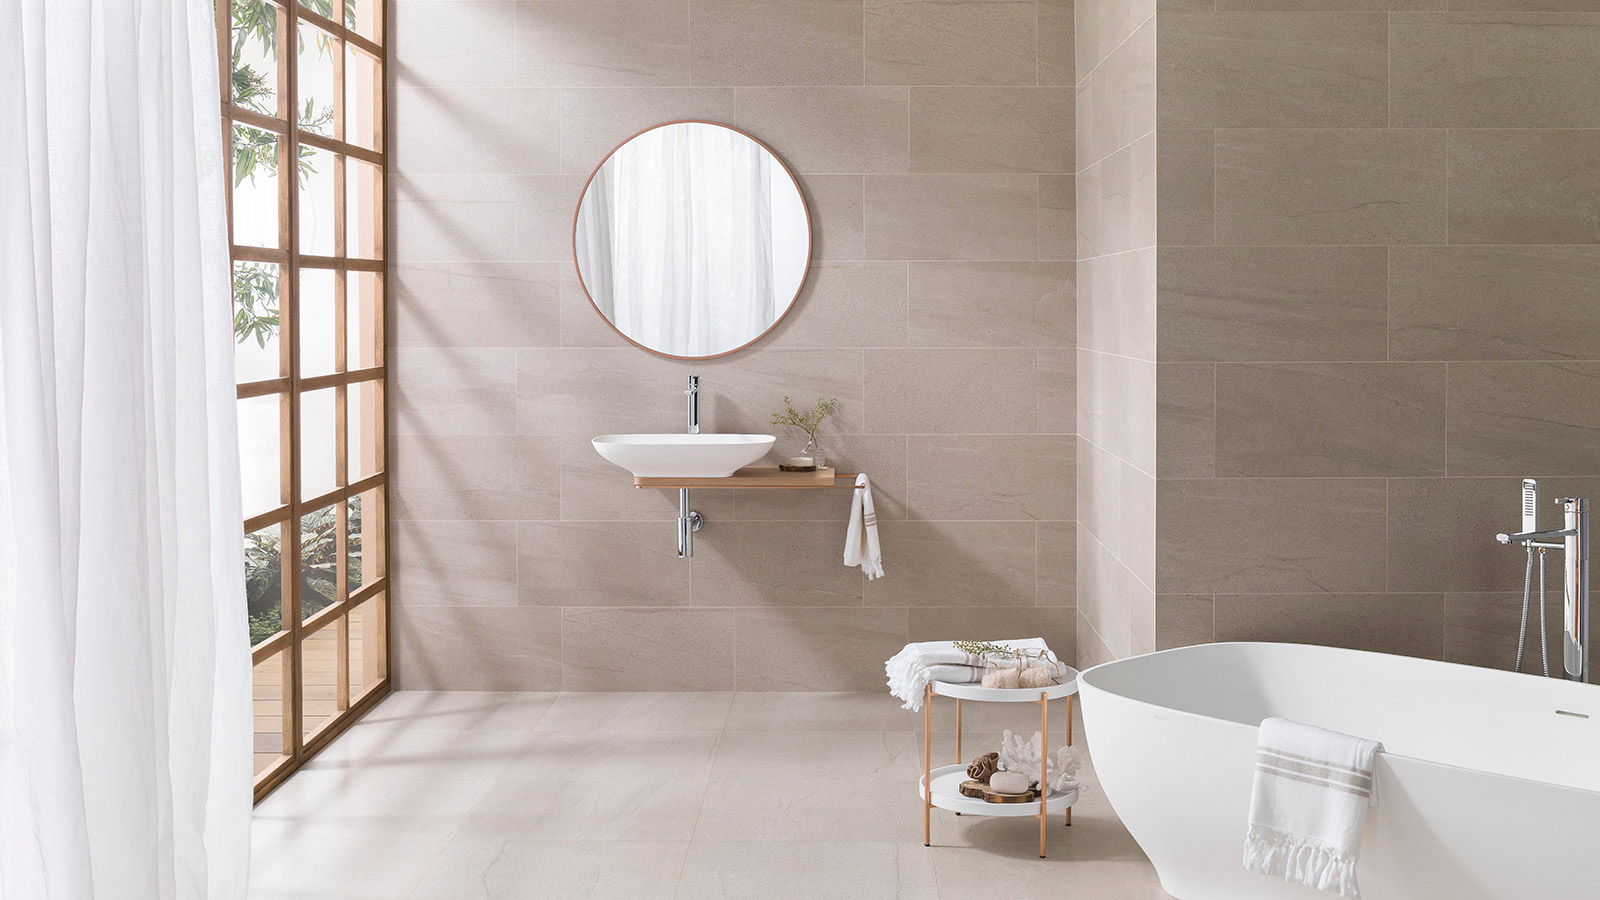 PURE by Yonoh, futuristic pieces for the bathroom